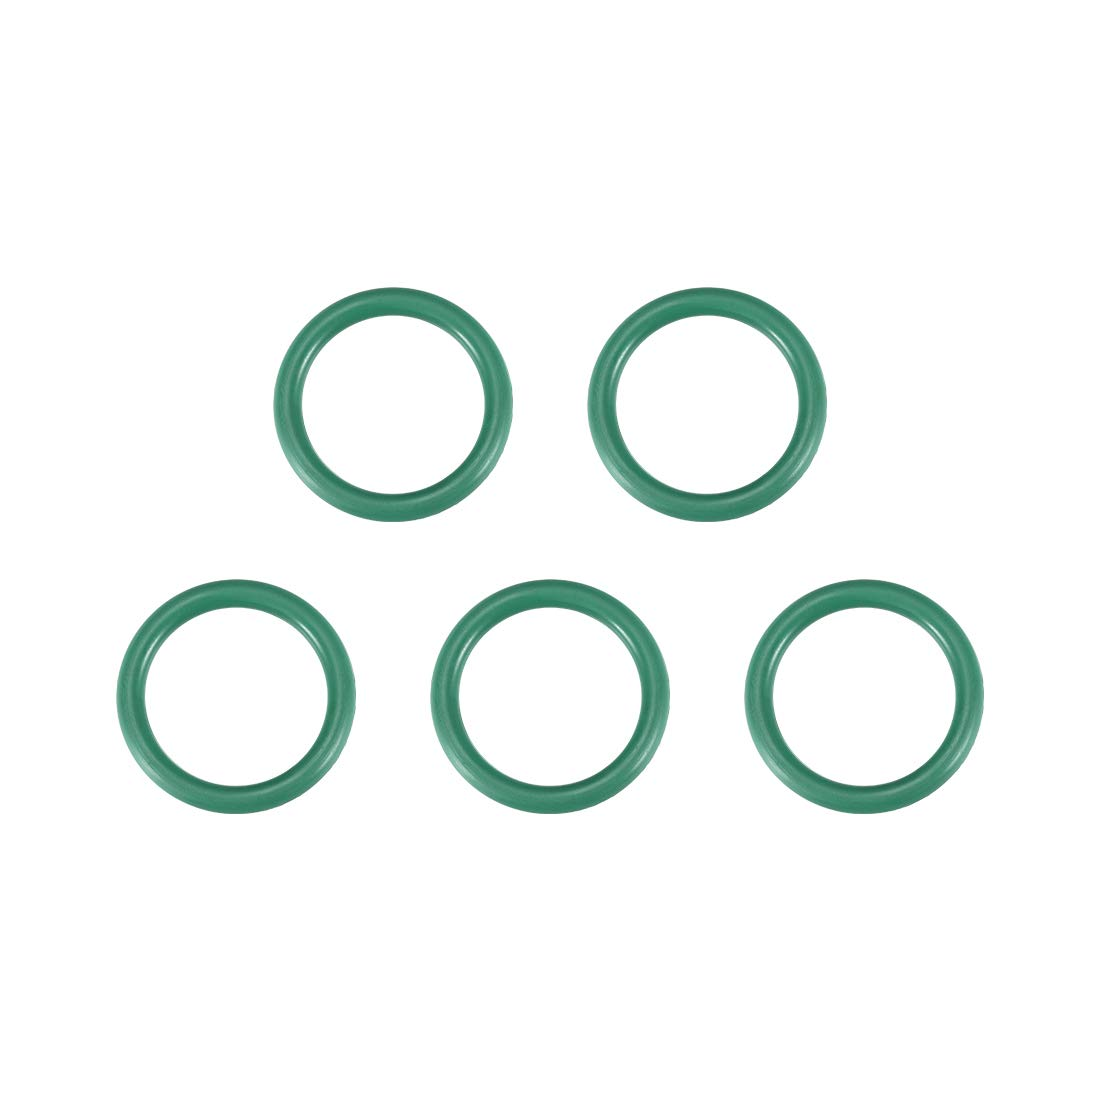 Green Pack of 5 uxcell Fluorine Rubber O-Rings 33mm OD 26.8mm ID 3.1mm Width FKM Seal Gasket for Vehicle Machinery Plumbing